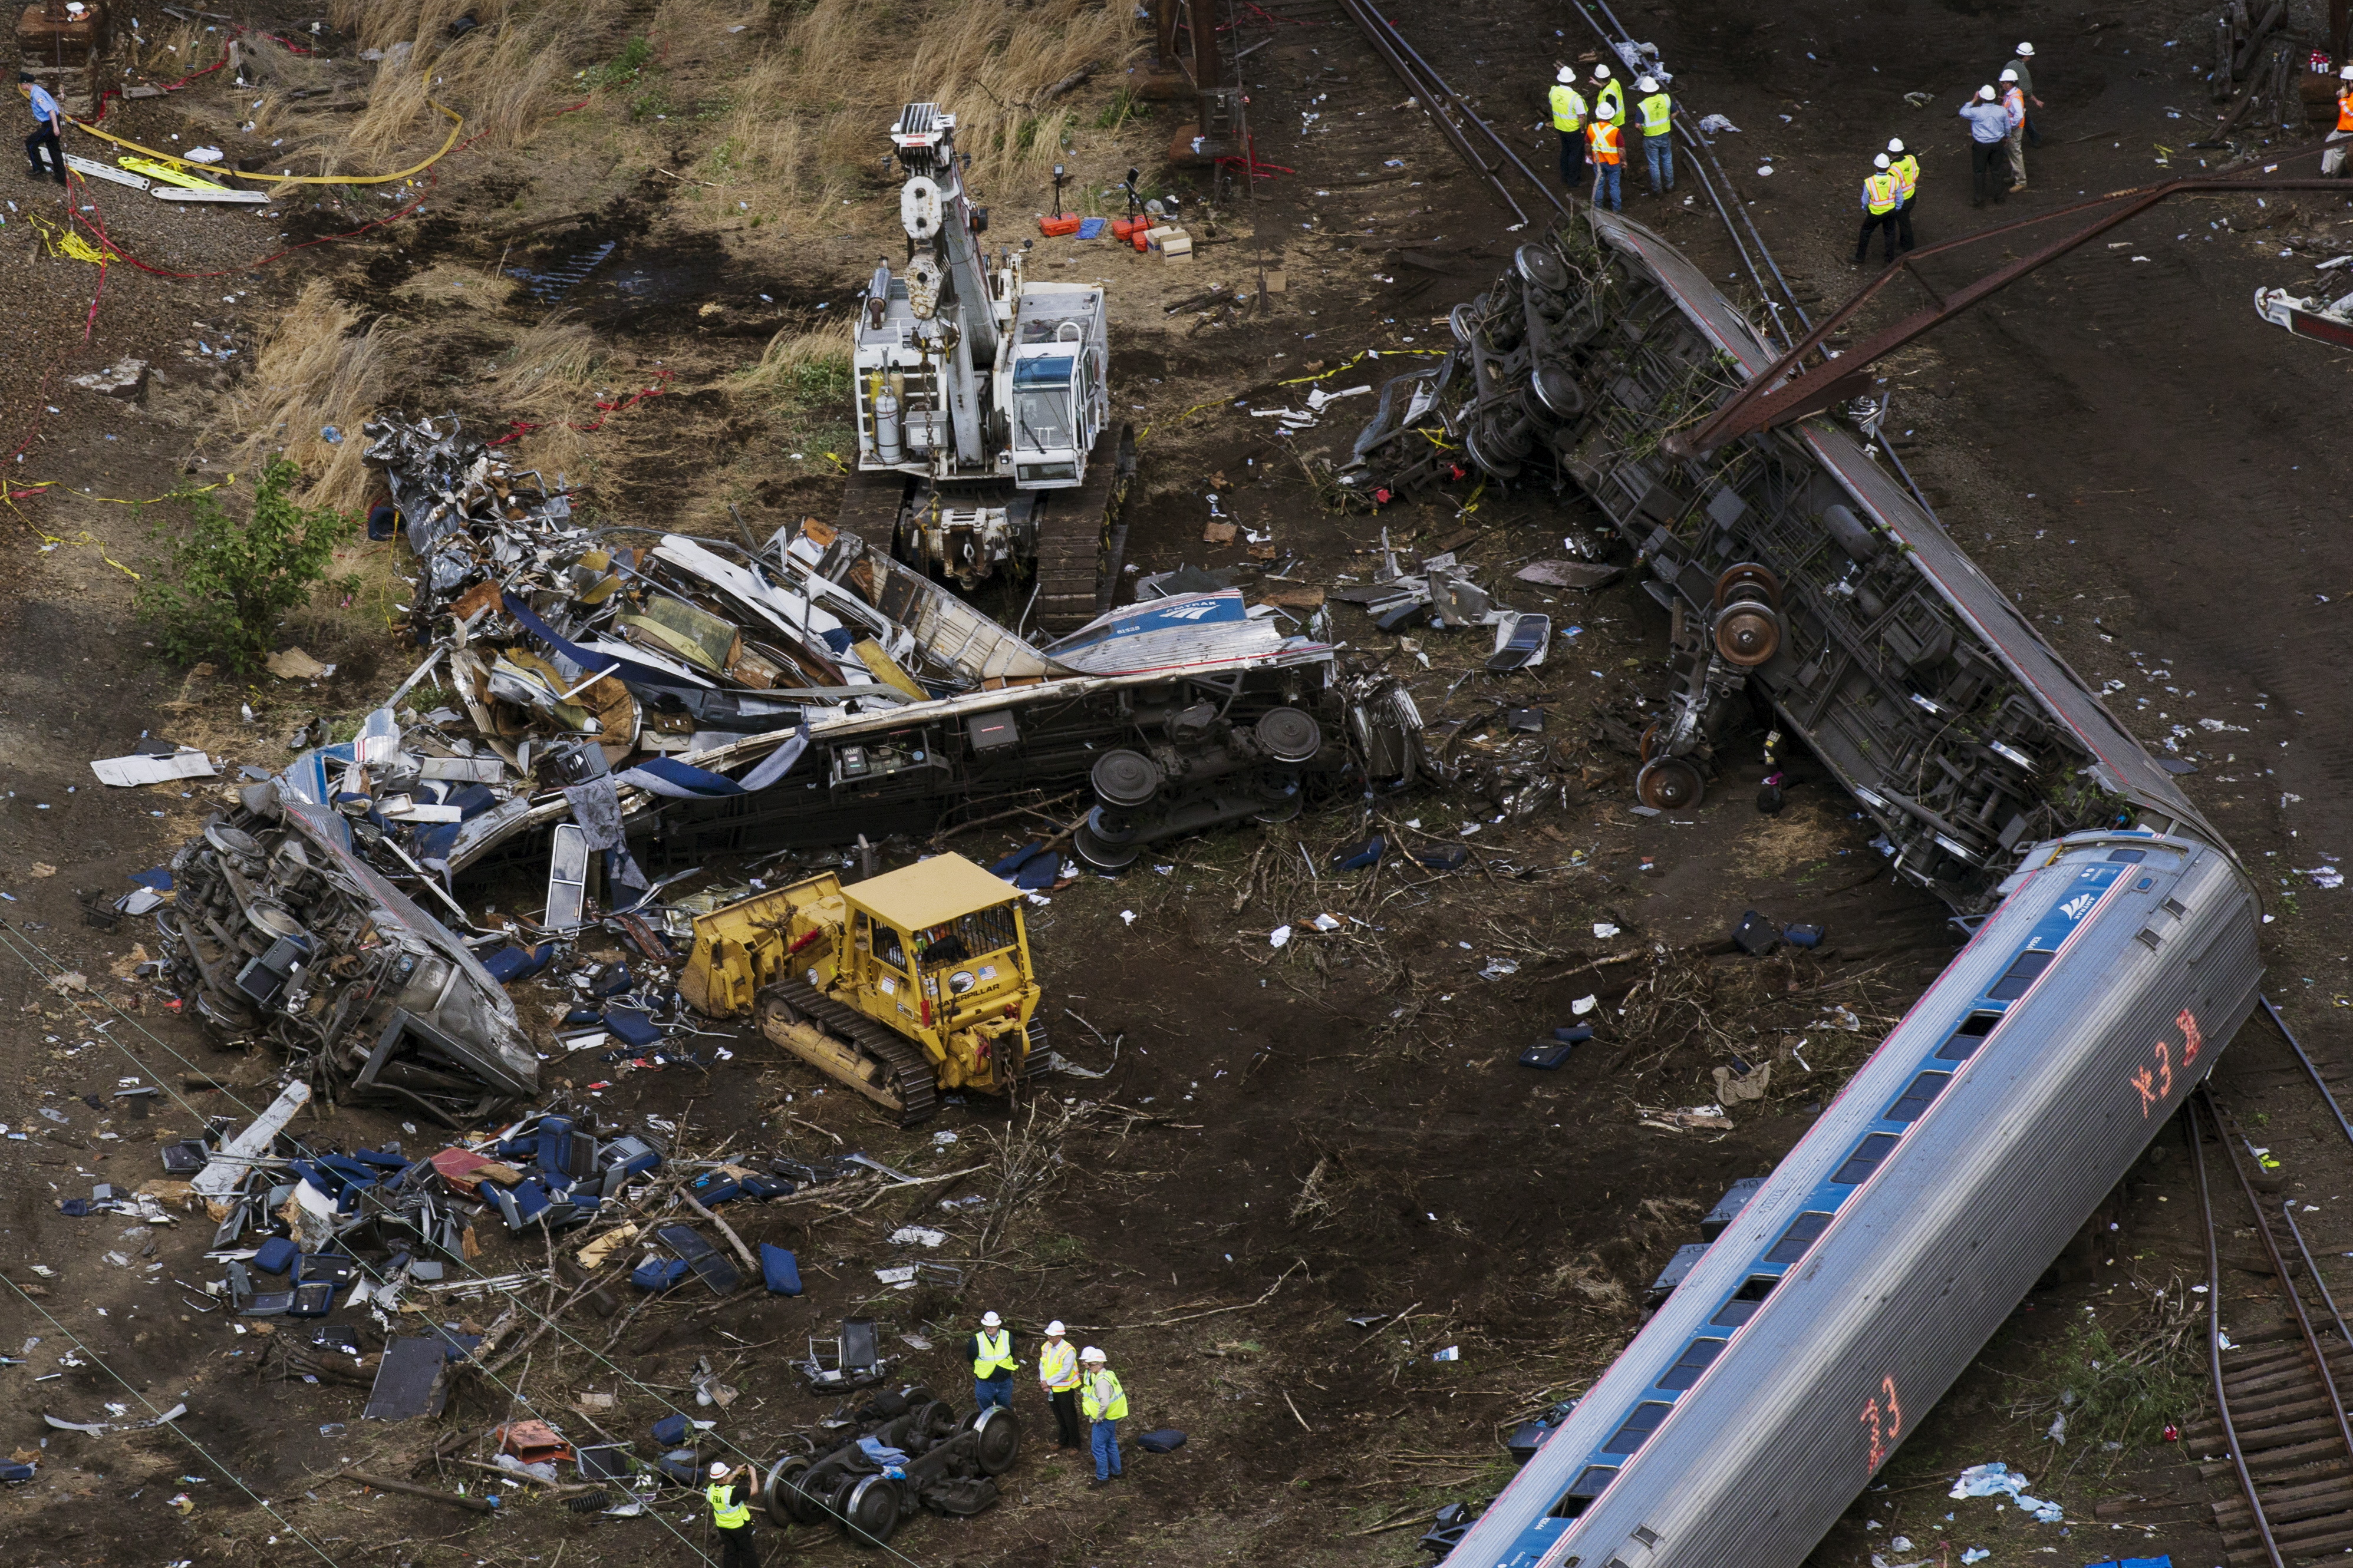 Emergency workers and Amtrak personnel inspect a derailed Amtrak train in Philadelphia, Pennsylvania